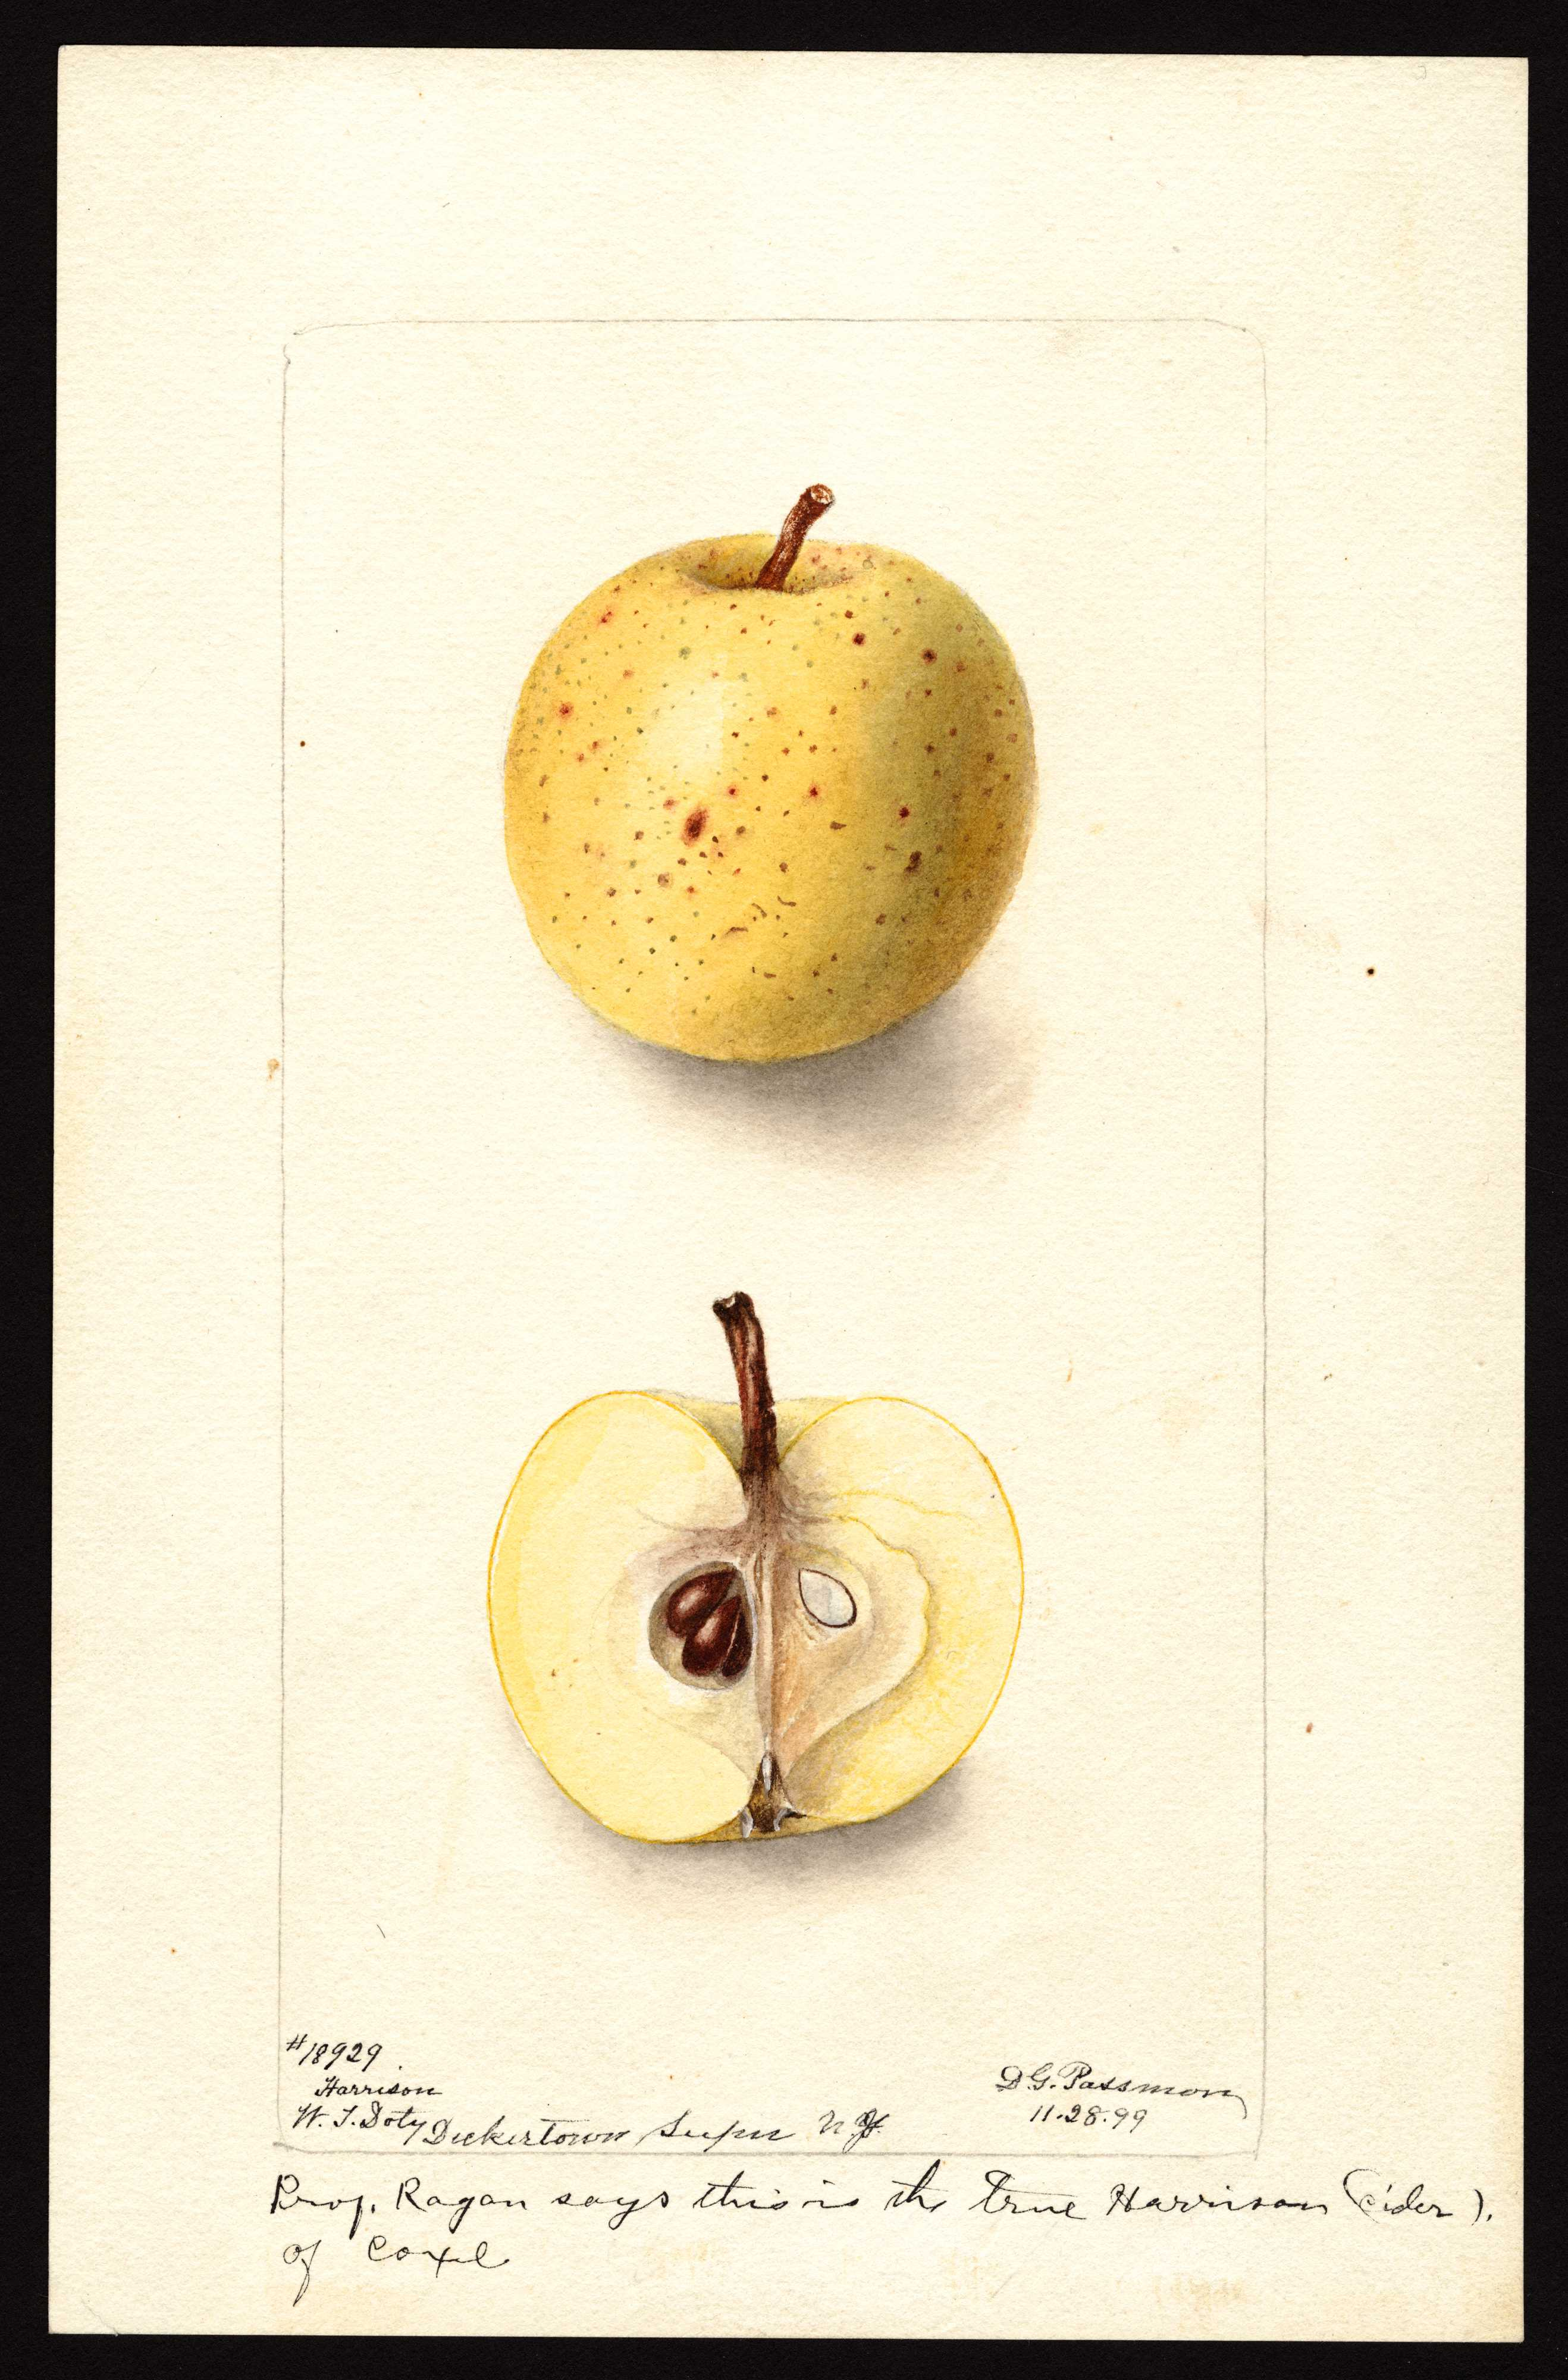 watercolor of a small yellow apple with brown spots varying in size from small to large